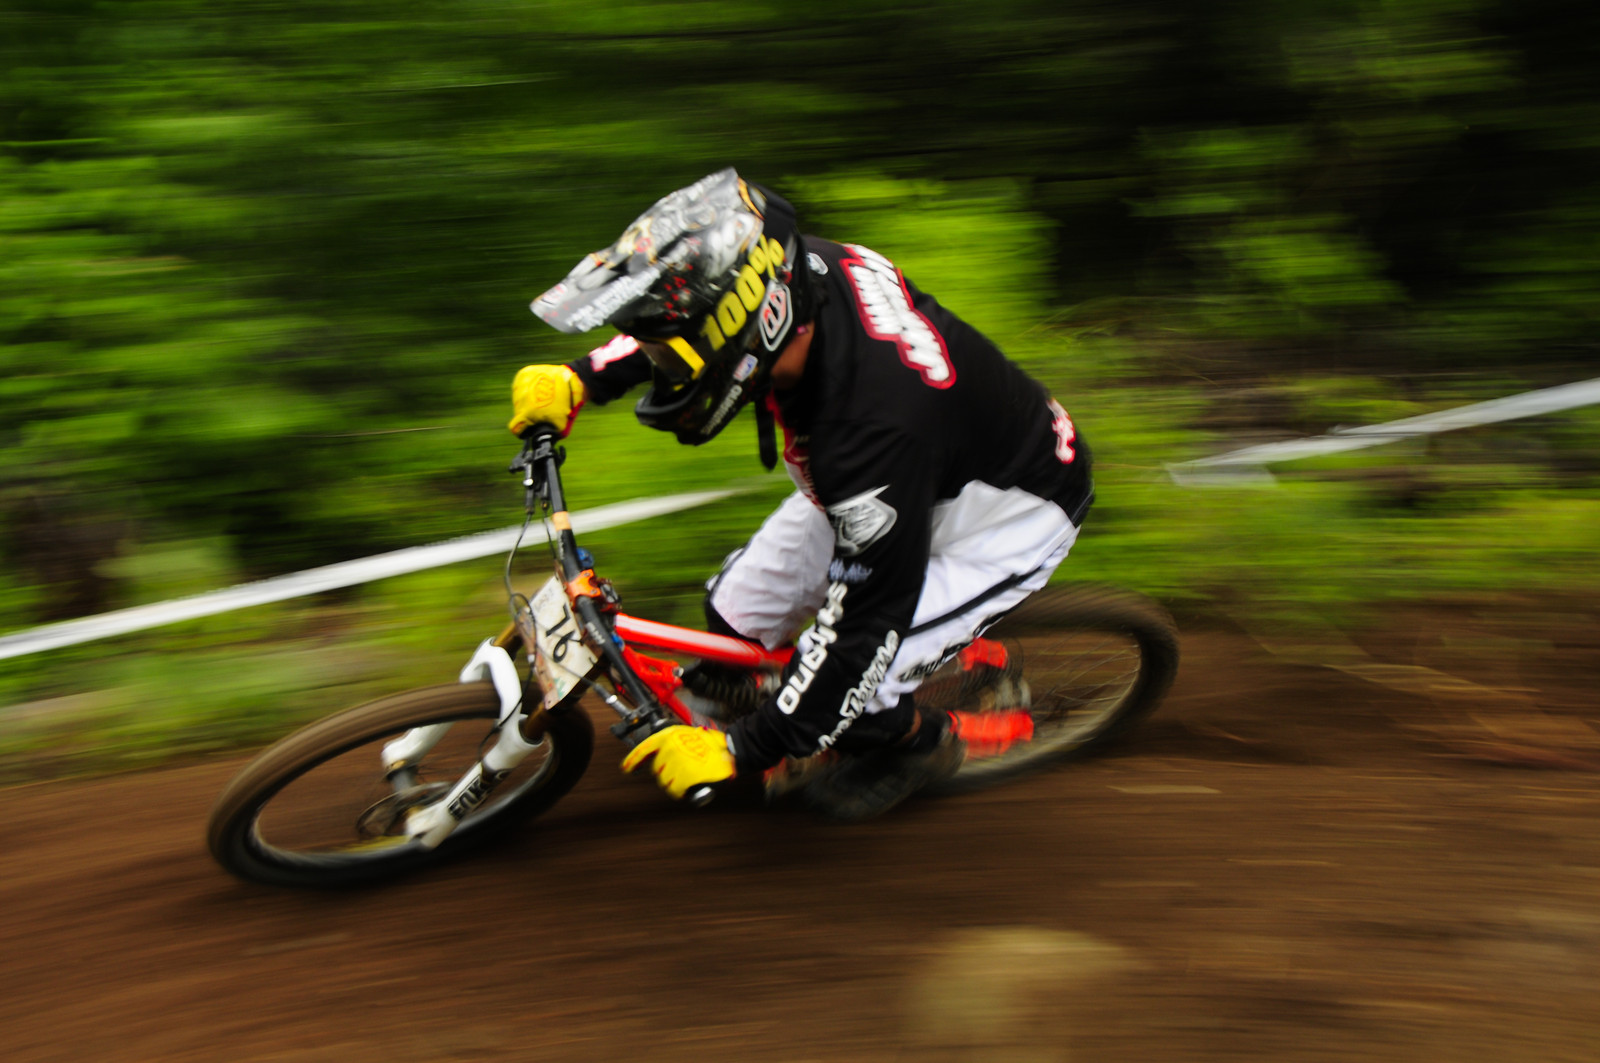 Canadian Open Mario Jarrin - ezefaccio - Mountain Biking Pictures - Vital MTB